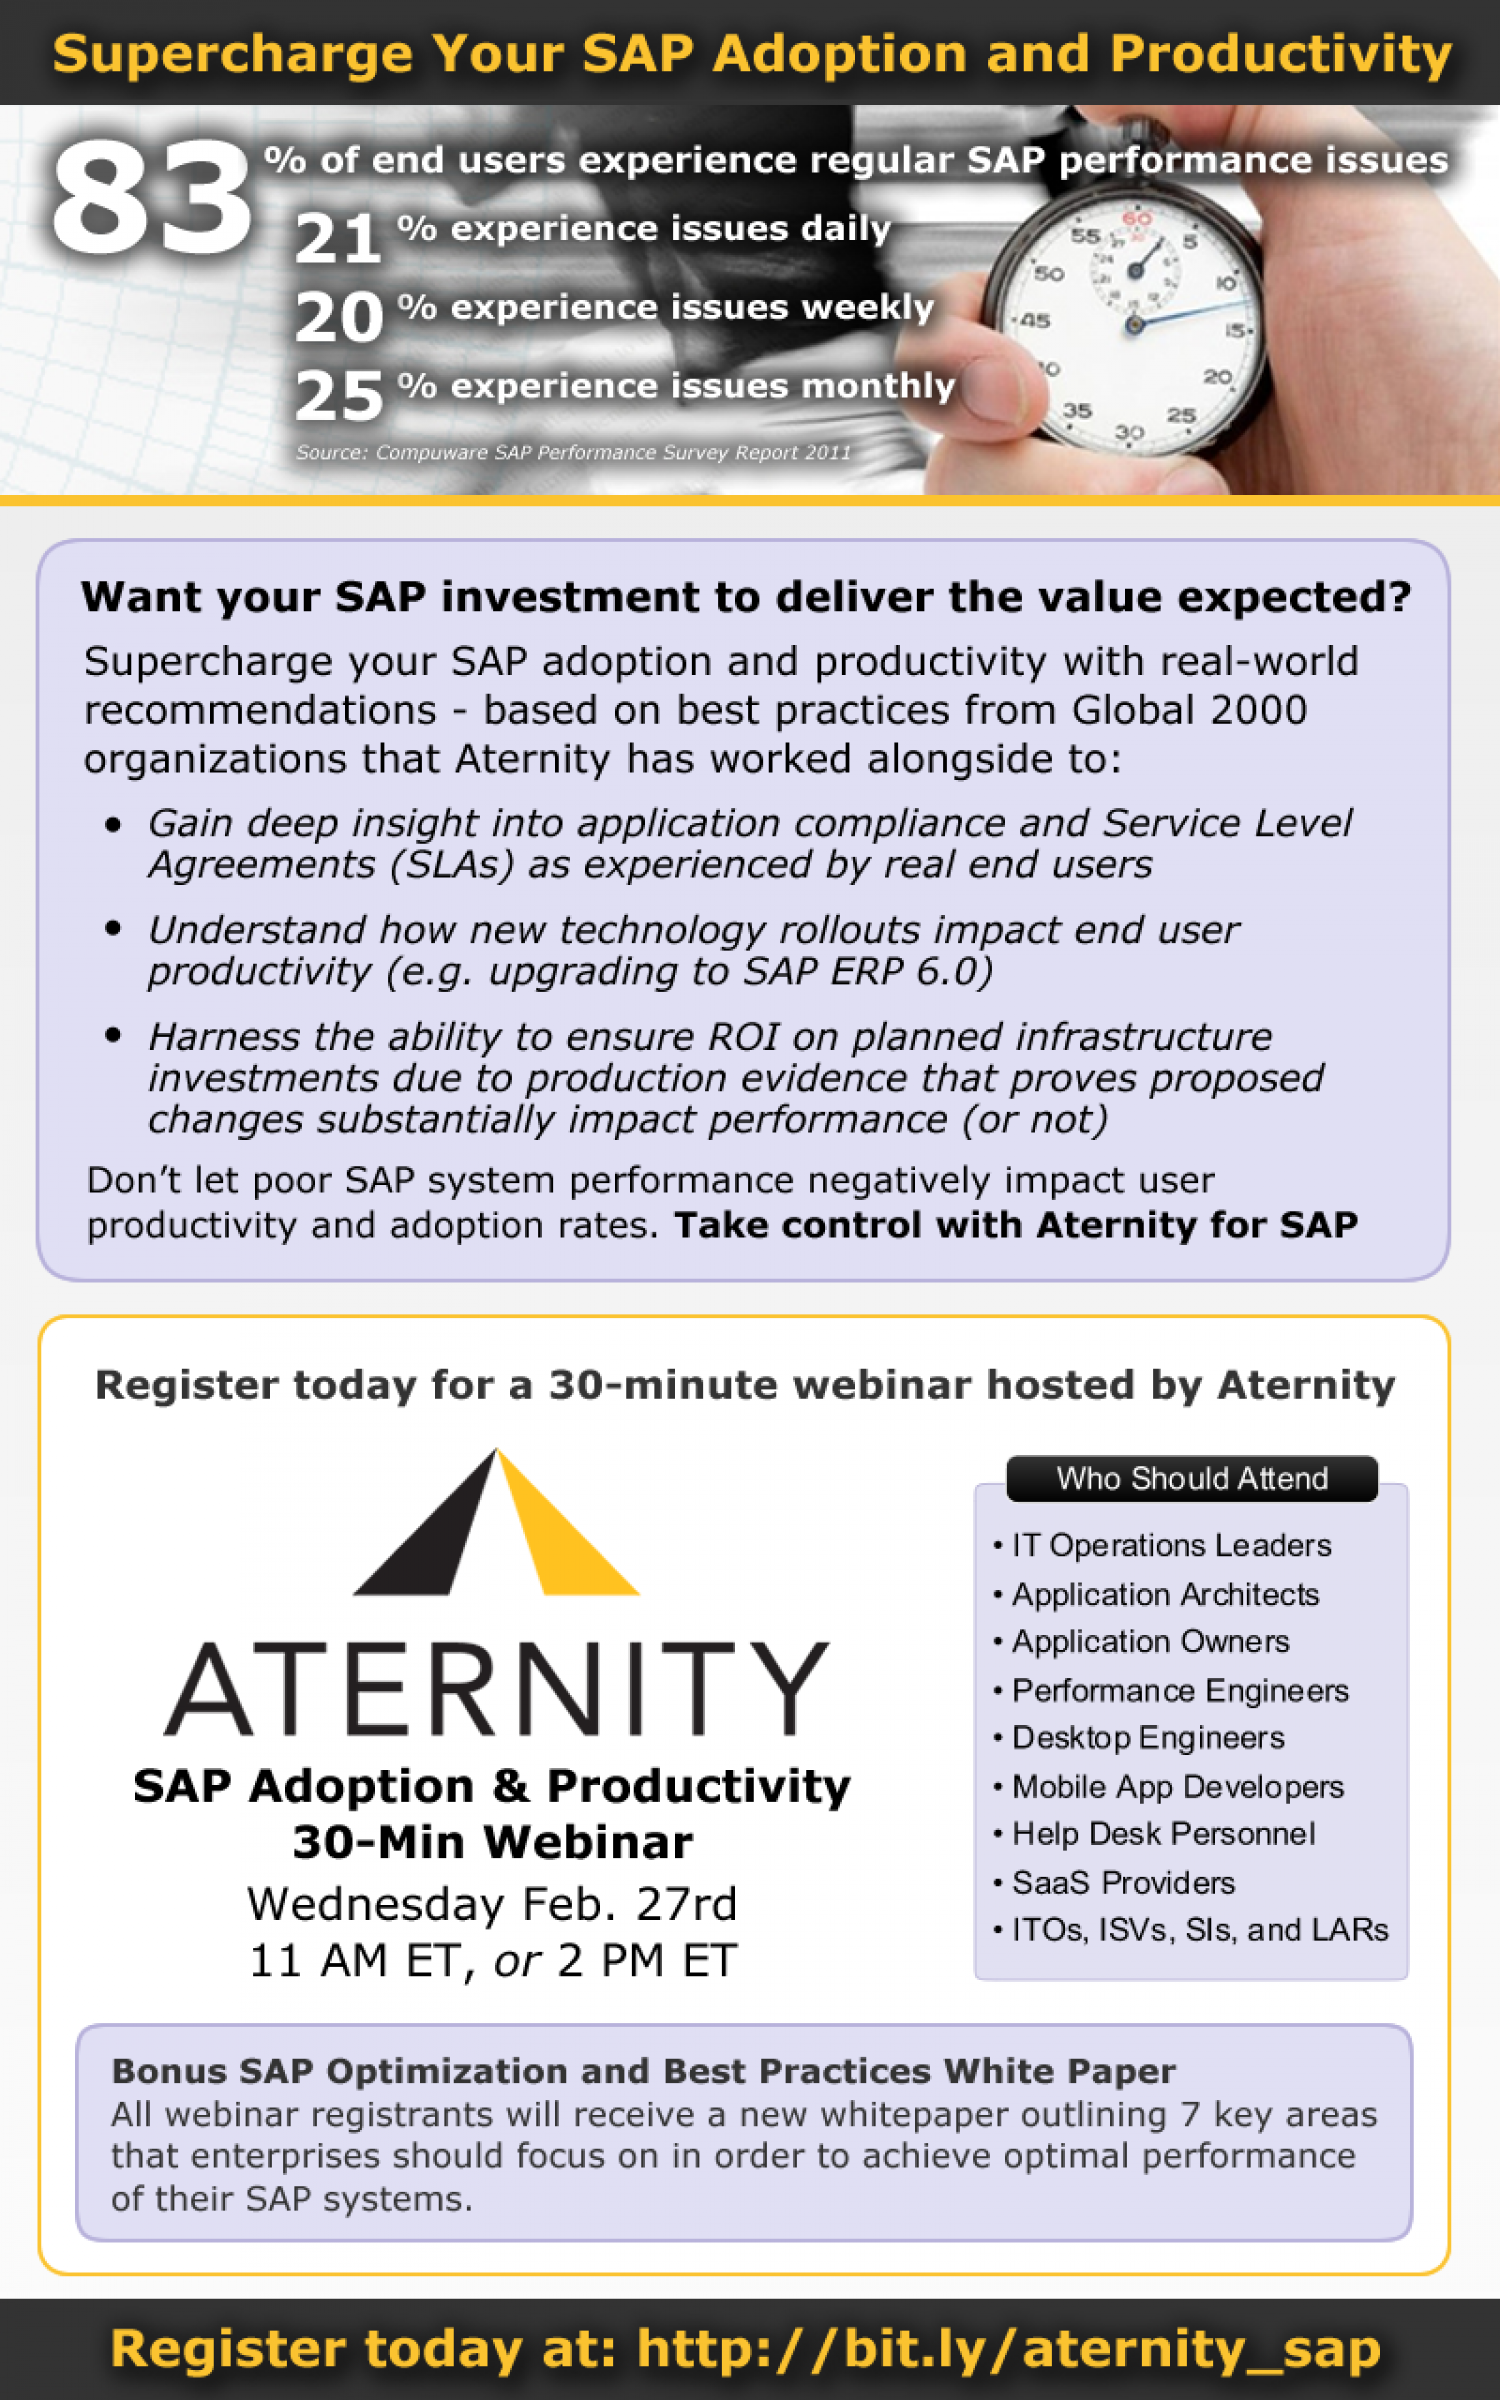 Supercharge Your SAP Adoption and Productivity Infographic